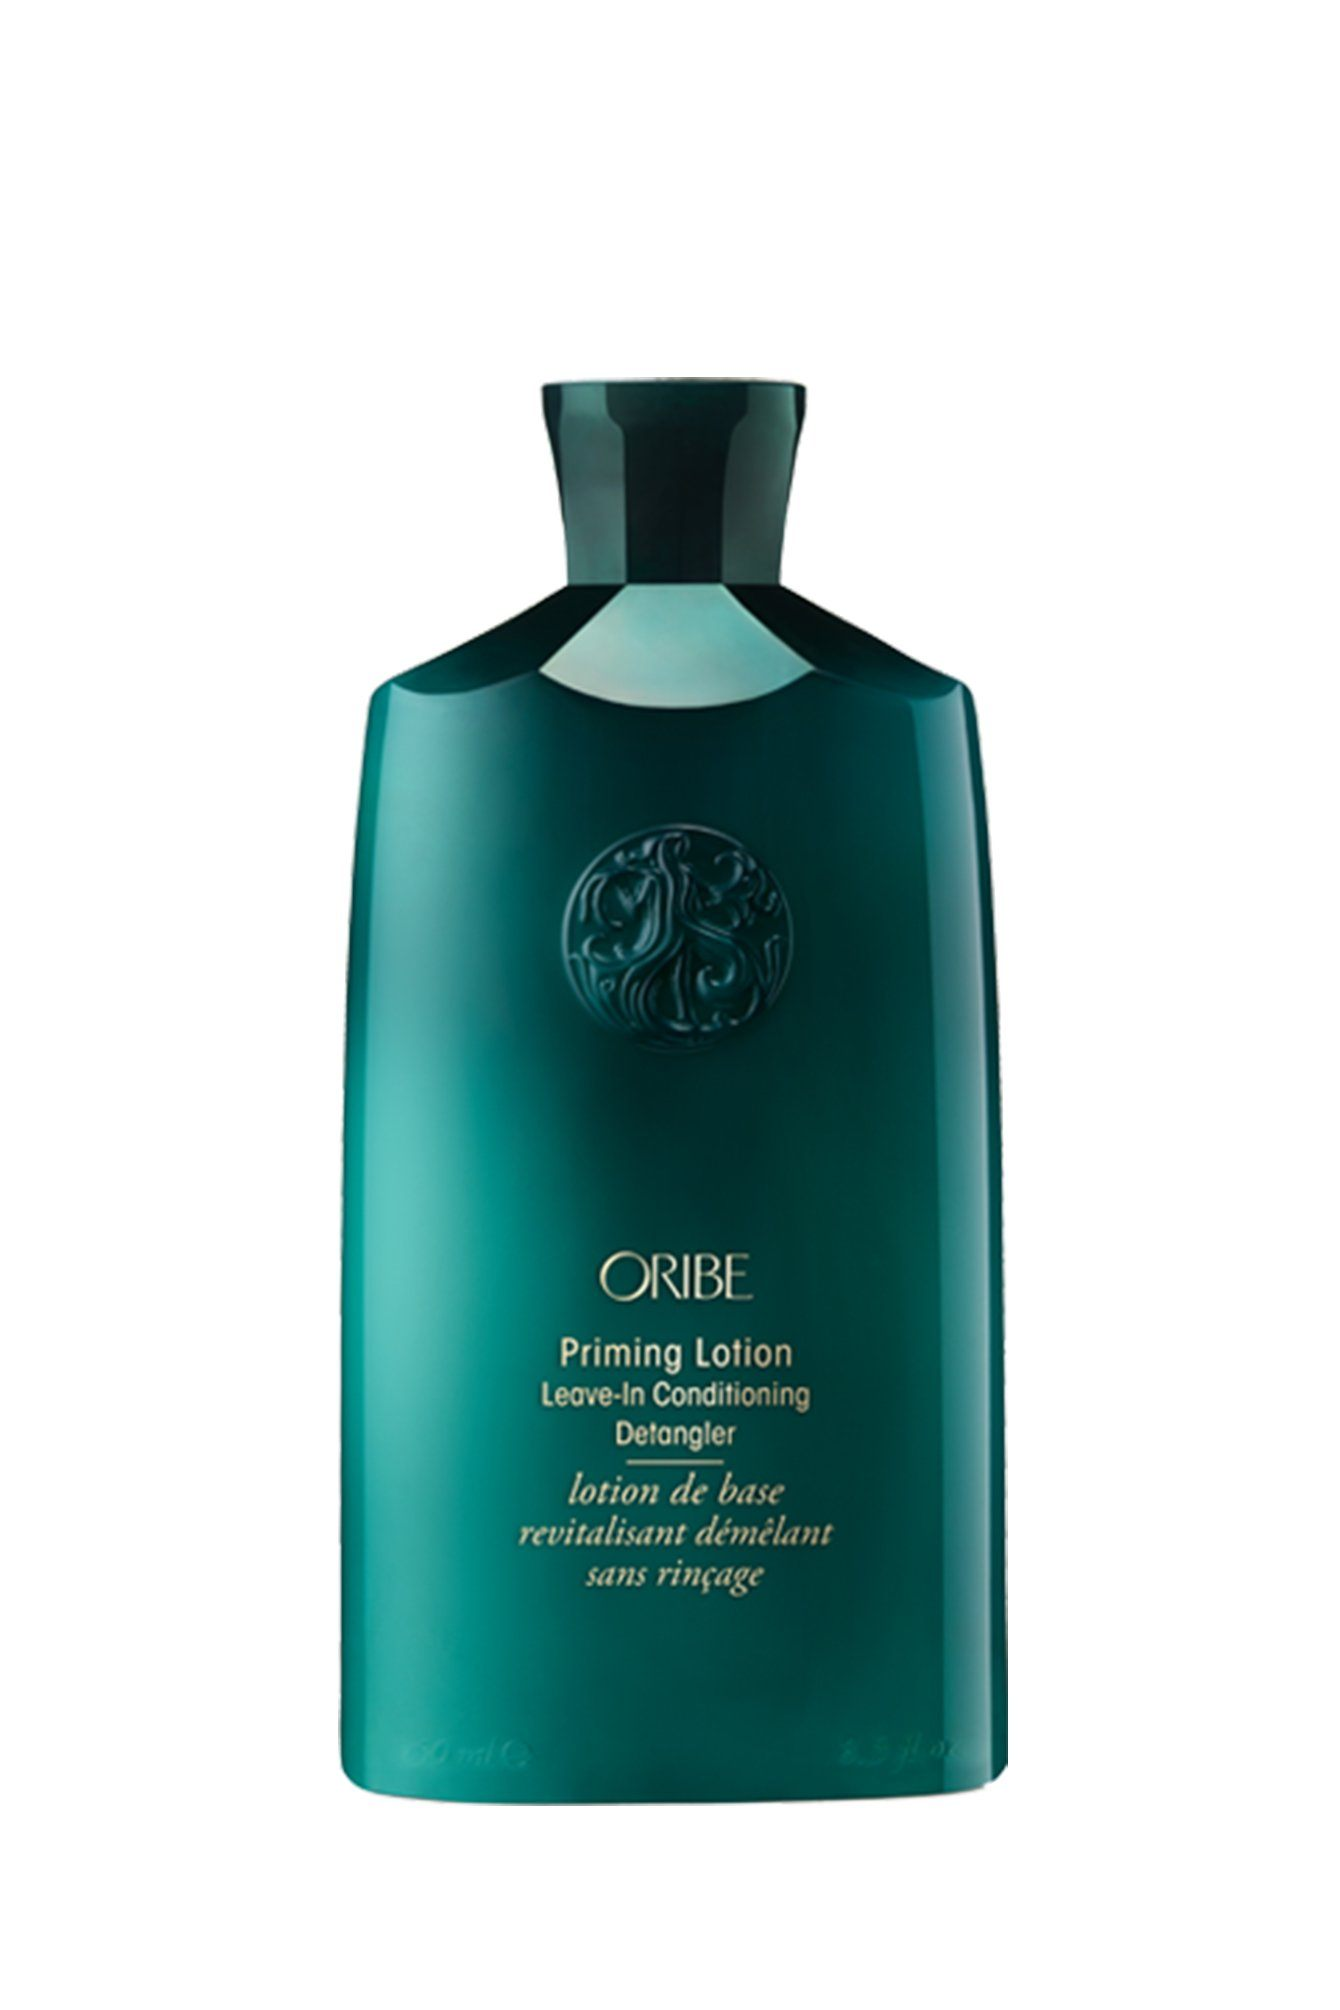 ORIBE | Priming Lotion Leave-In Conditioning Detangler